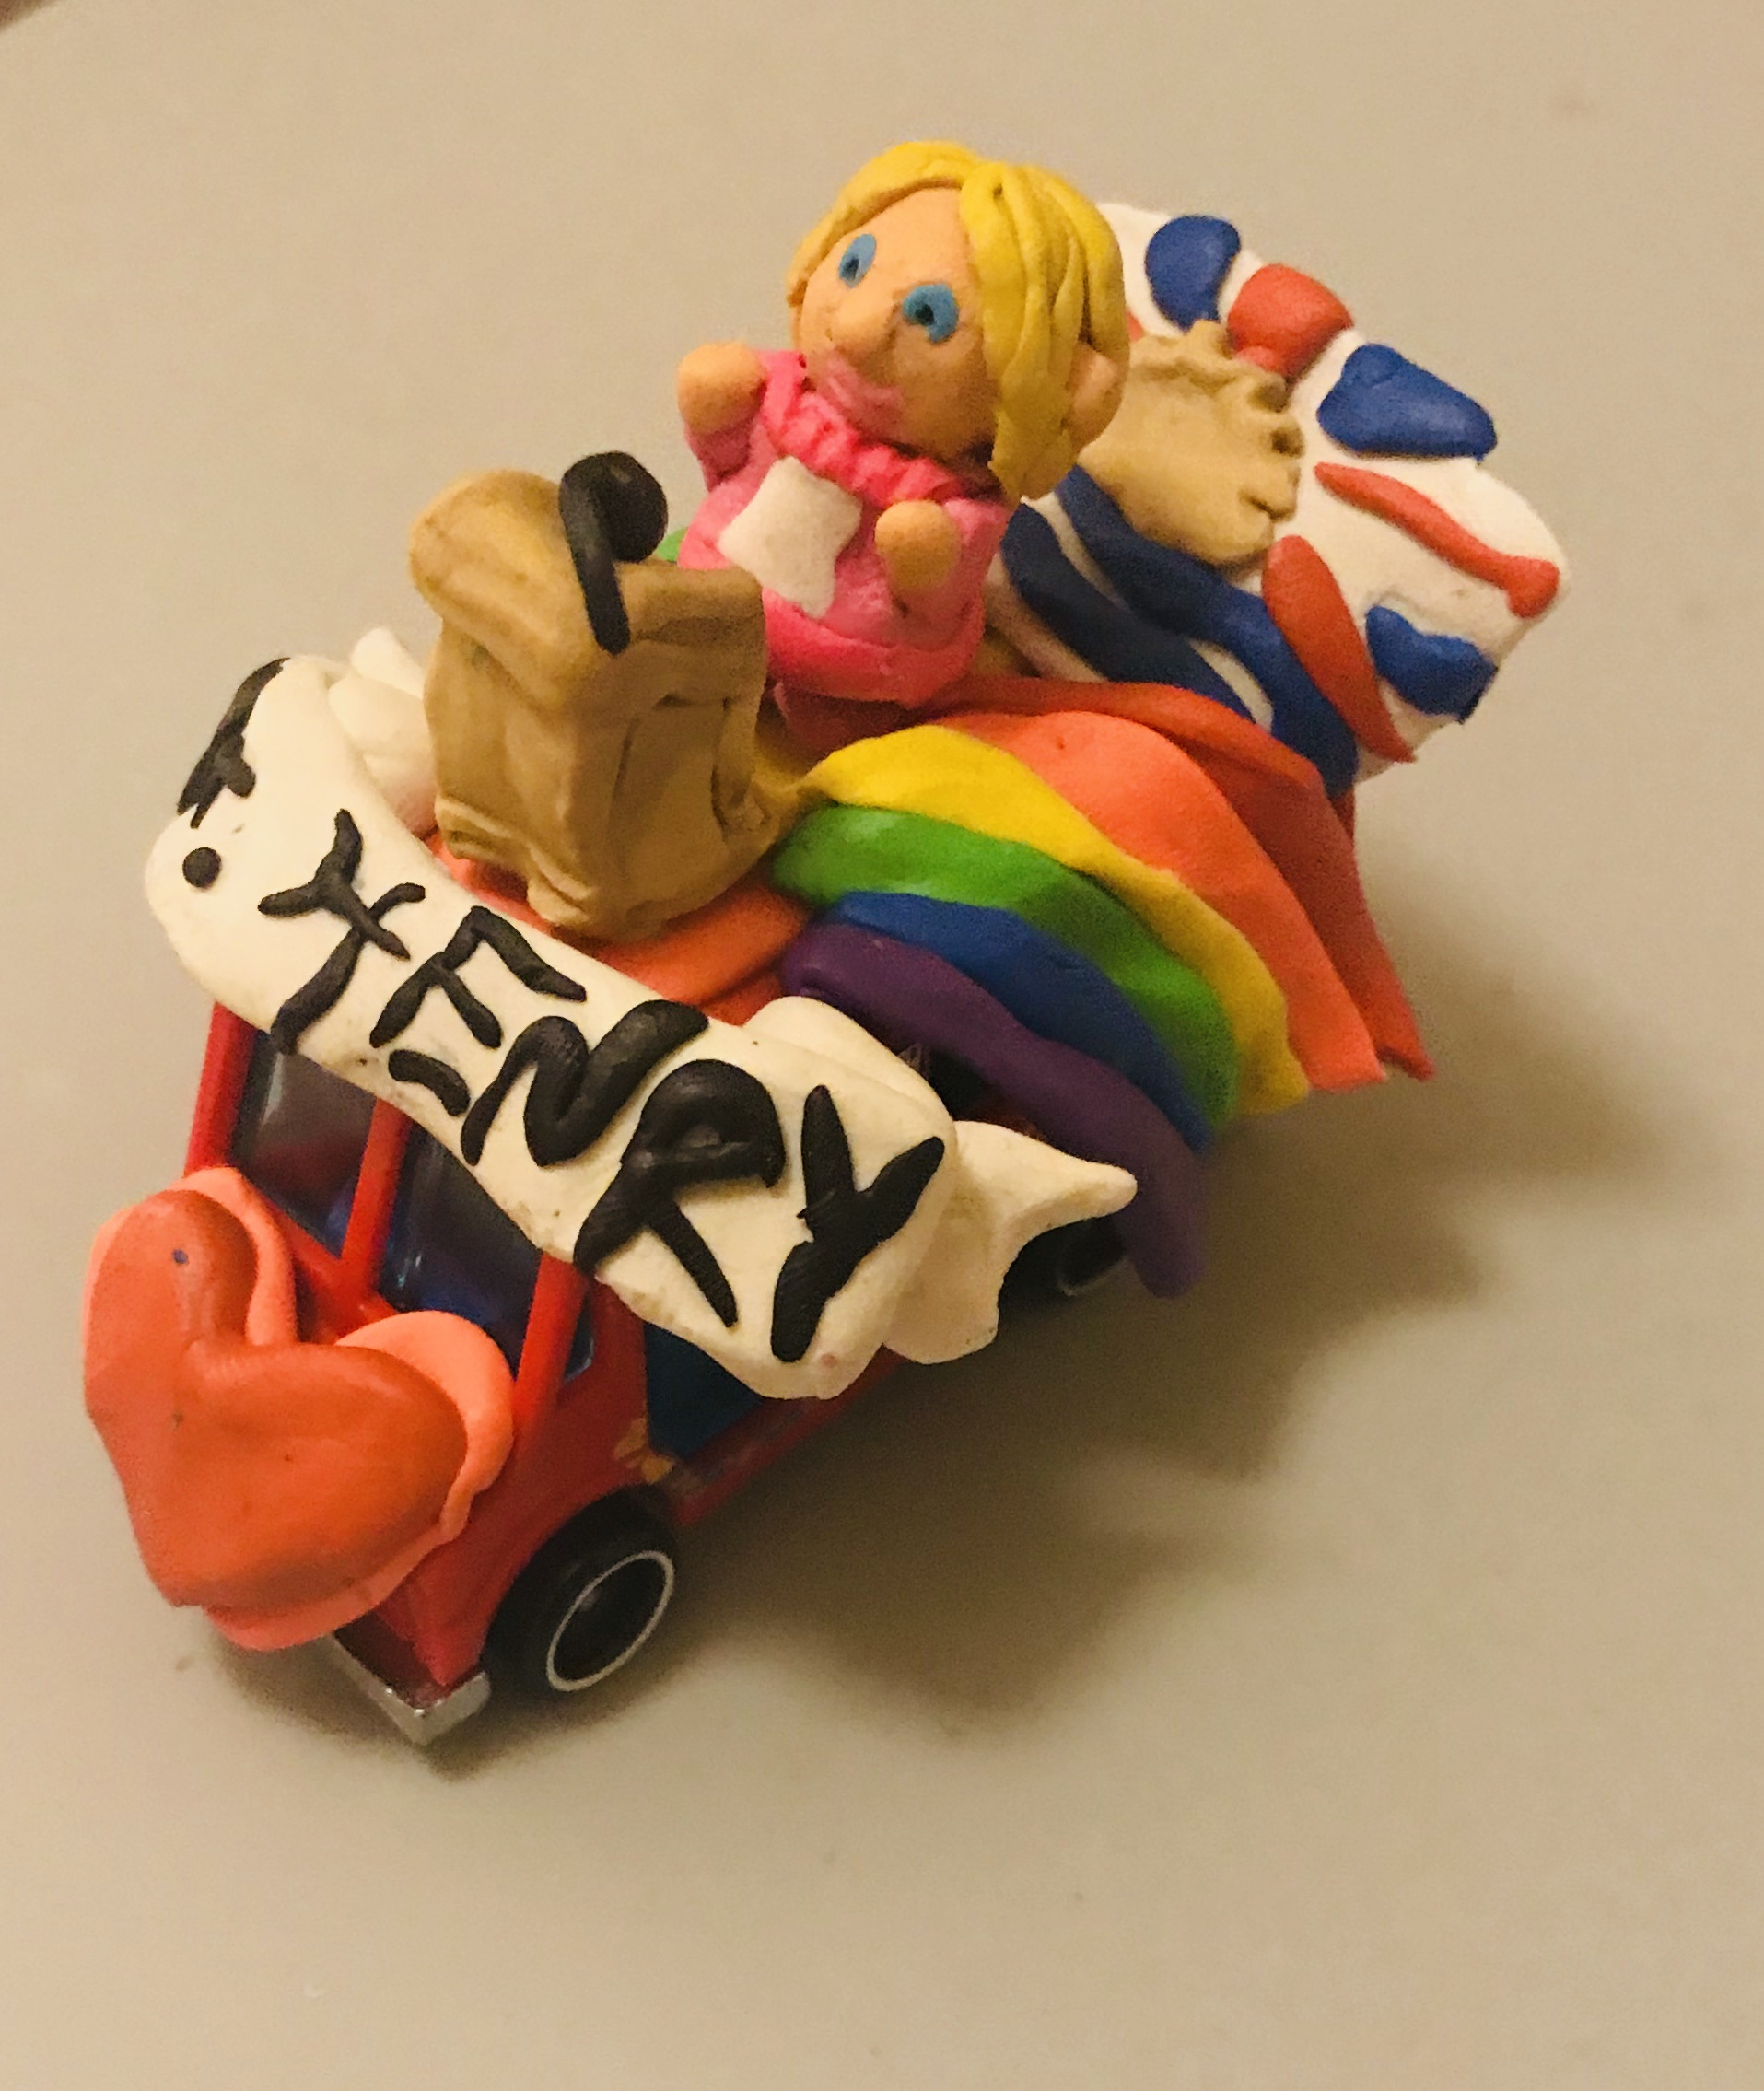 """A miniature Pride Parade float made out of Plasticine is shown with a miniature Dr. Bonnie Henry standing at a podum on top of the car. The vehicle has a heart on front, a rainbow flag draped over the side, and a banner staying """"Dr. Henry"""" on the front."""